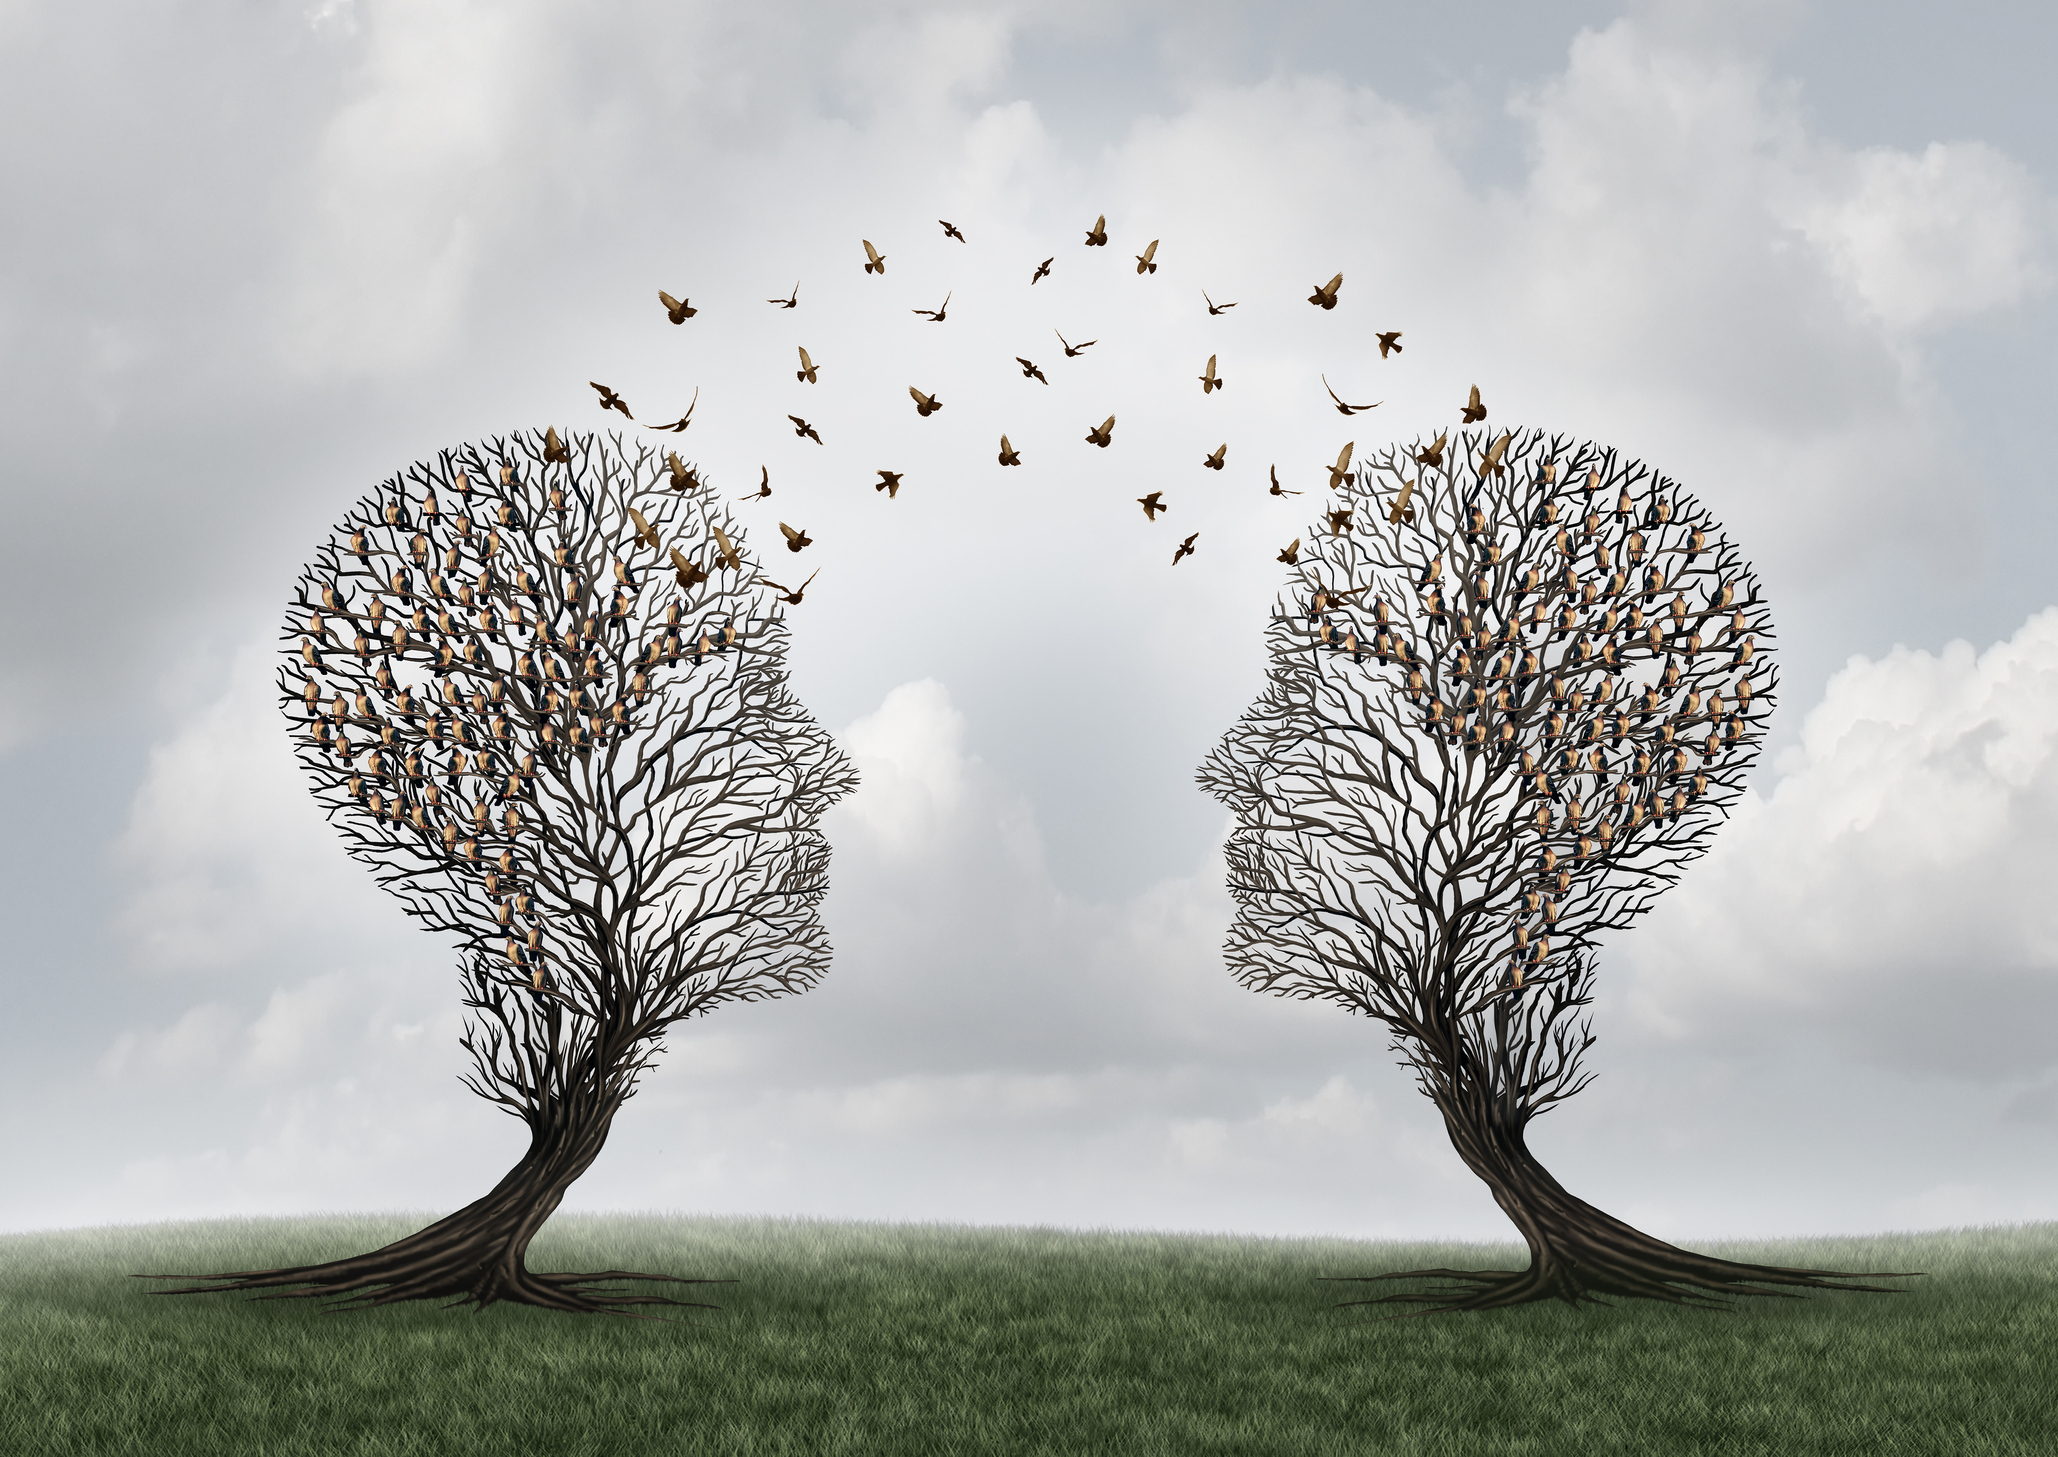 Communicating a message between two head shaped trees with birds perched and flying to each other as a metaphor for personal relationship